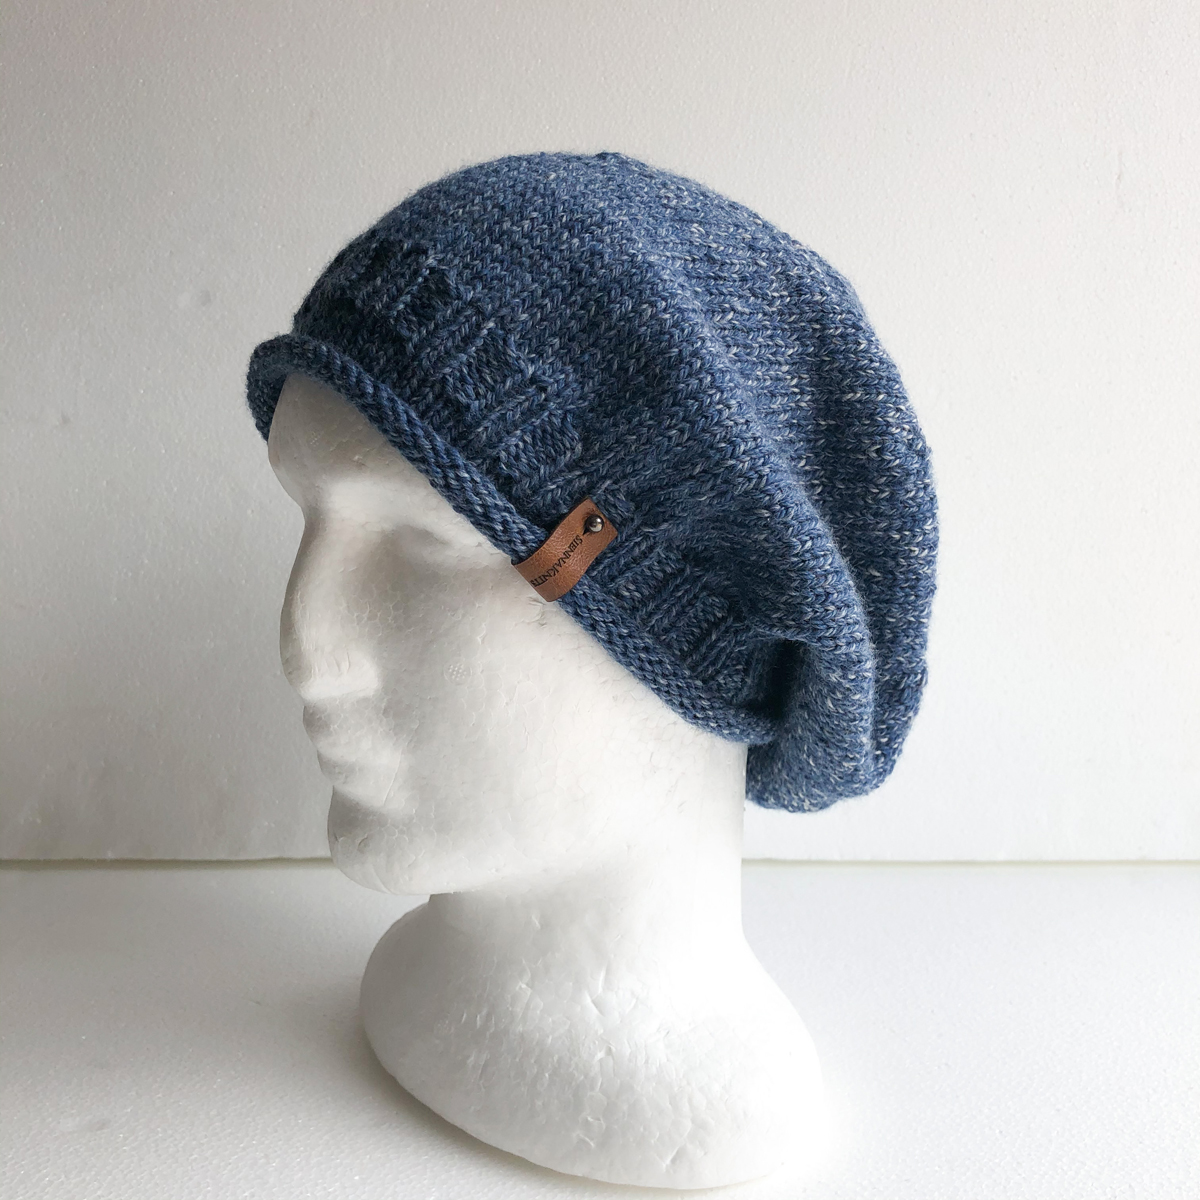 100% Wool Blue And White Knit Women Slouchy Beanie With Roll Up Brim By SiennaKnits